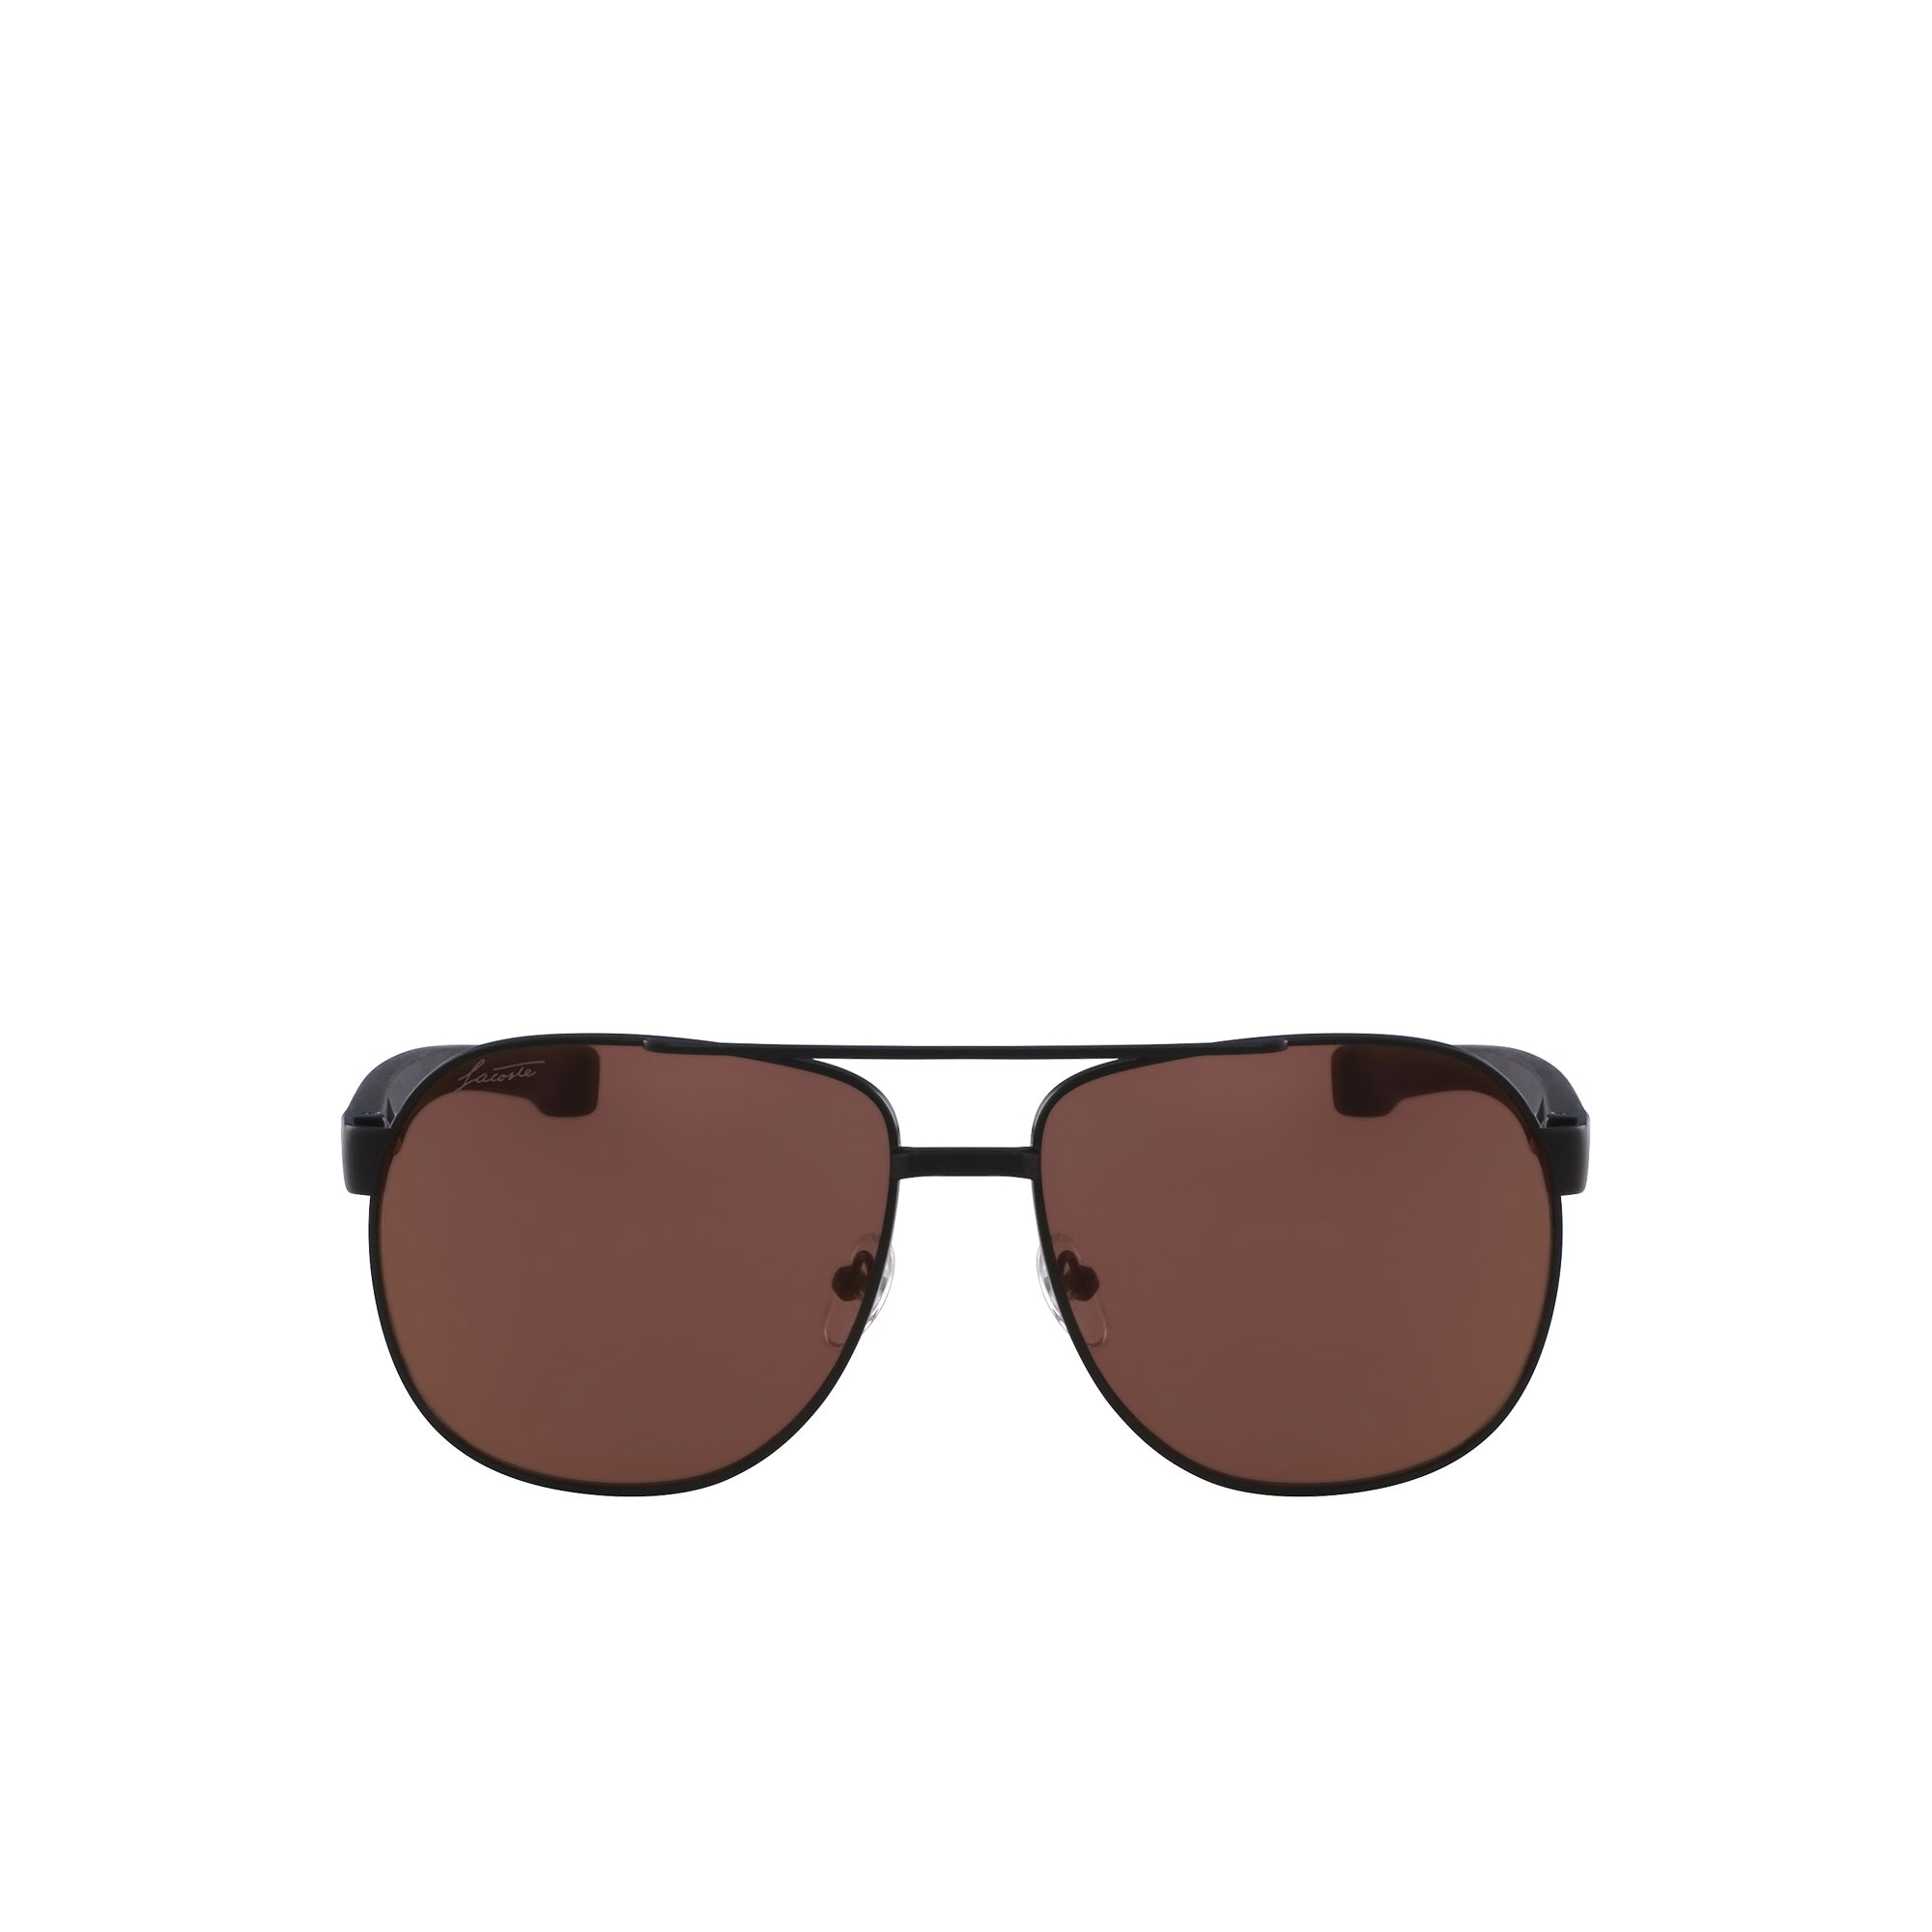 Men's Magnetic Sunglasses